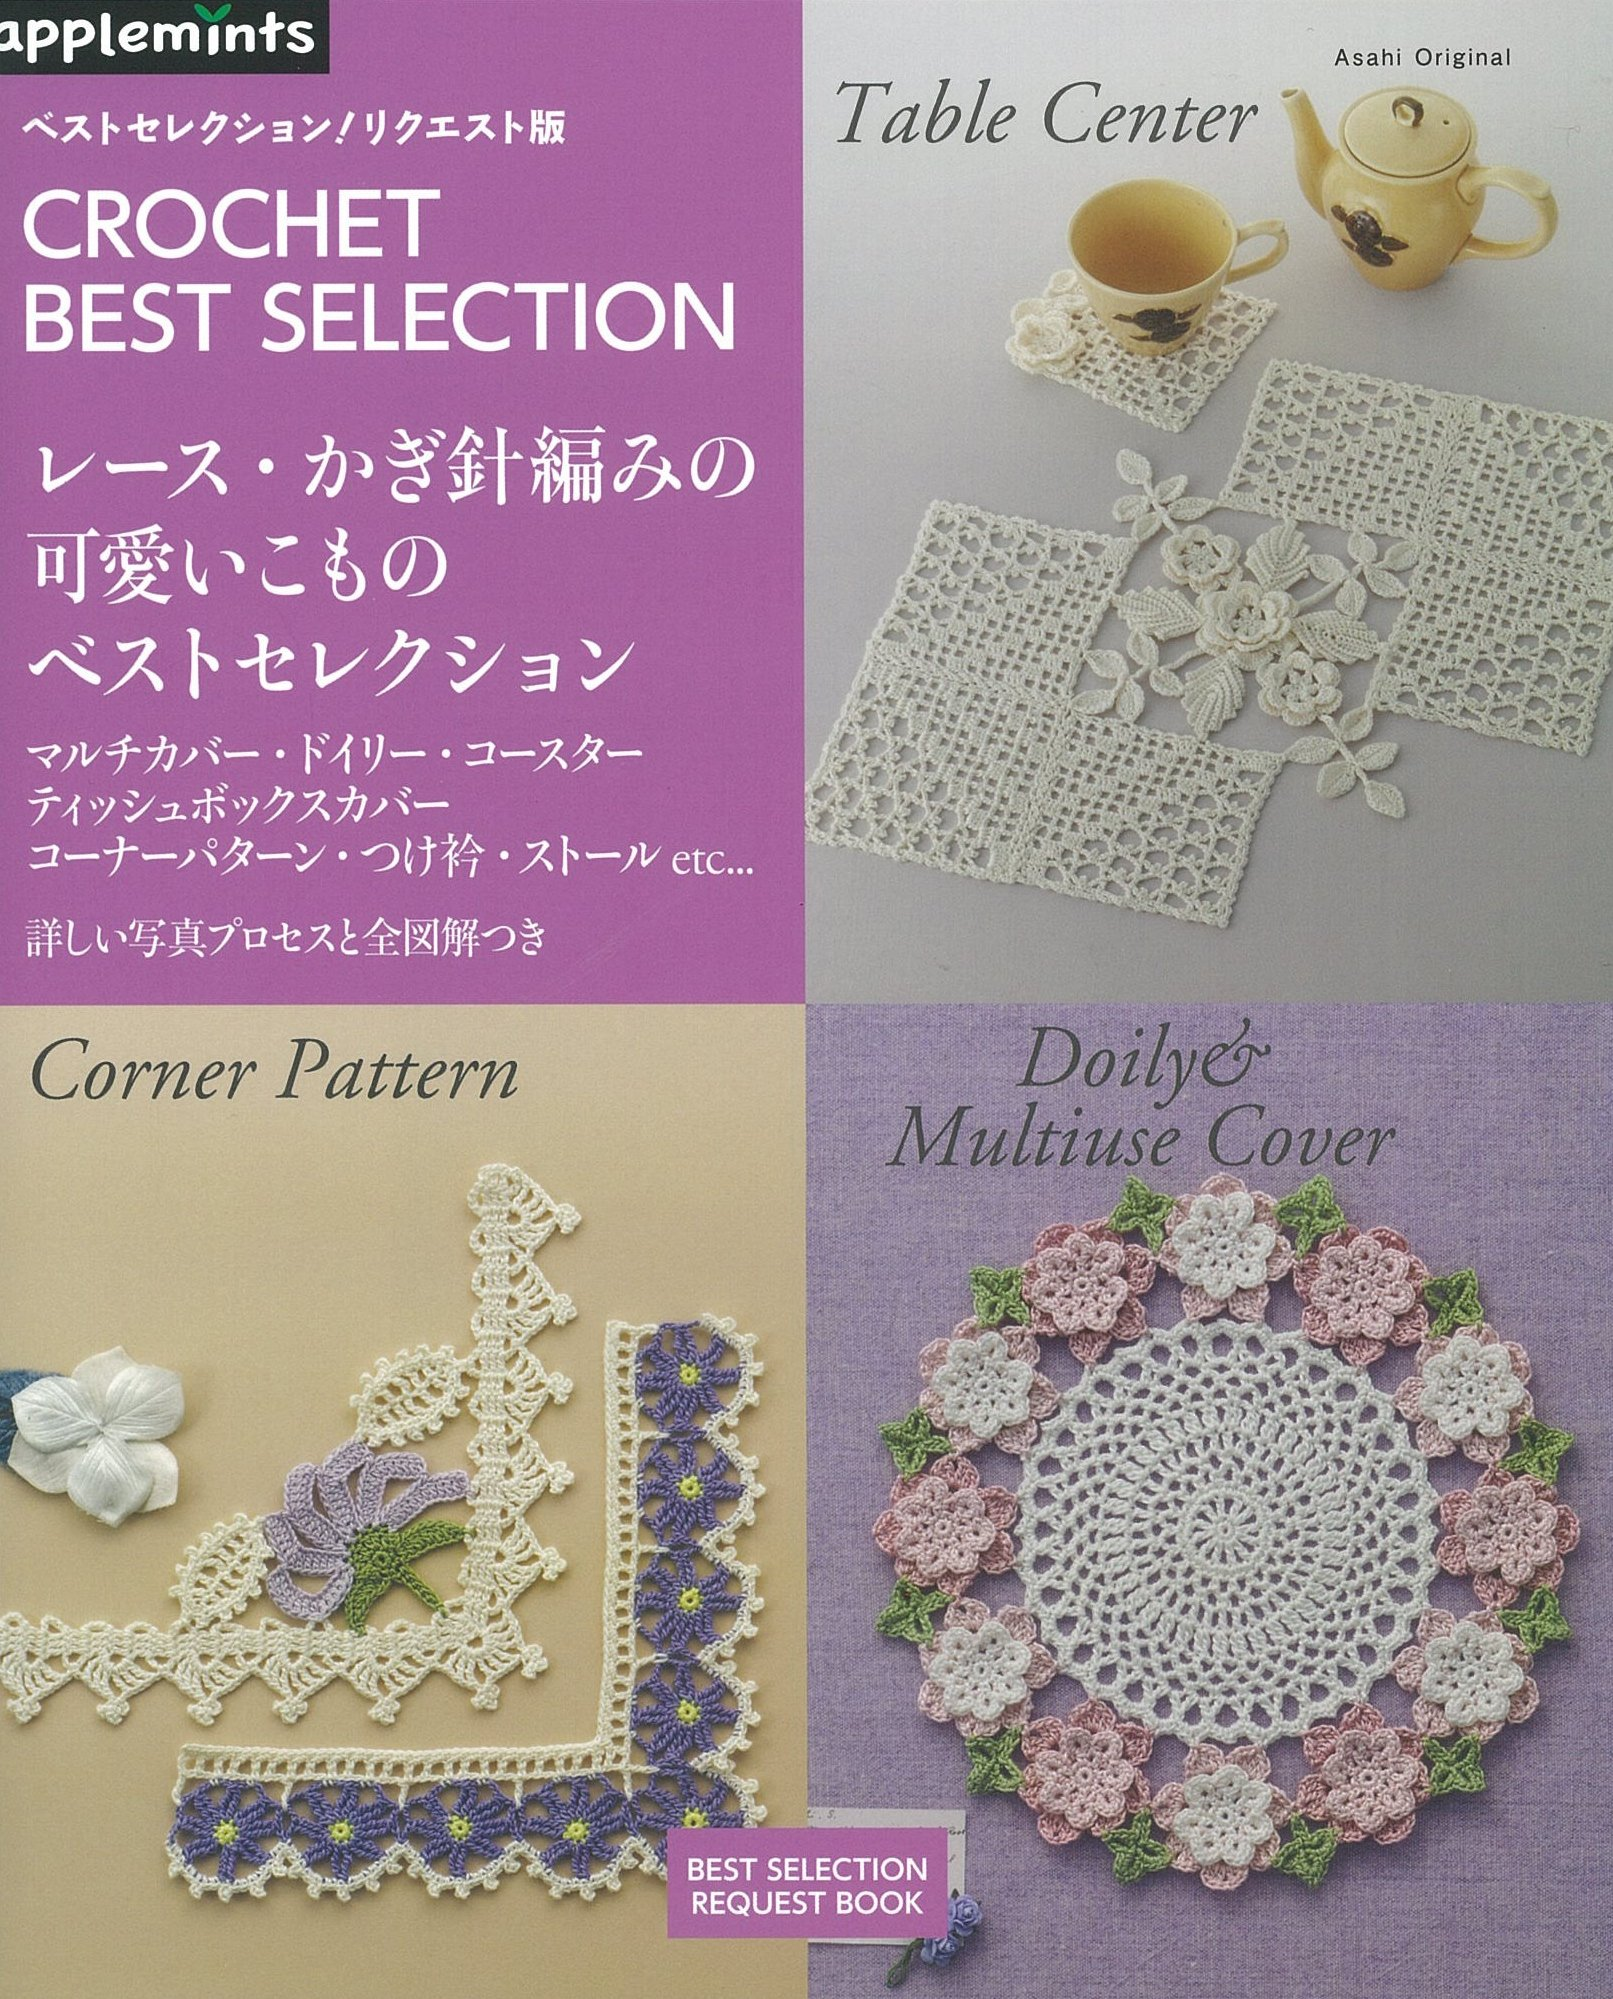 Chochet Best Selection request version Lace